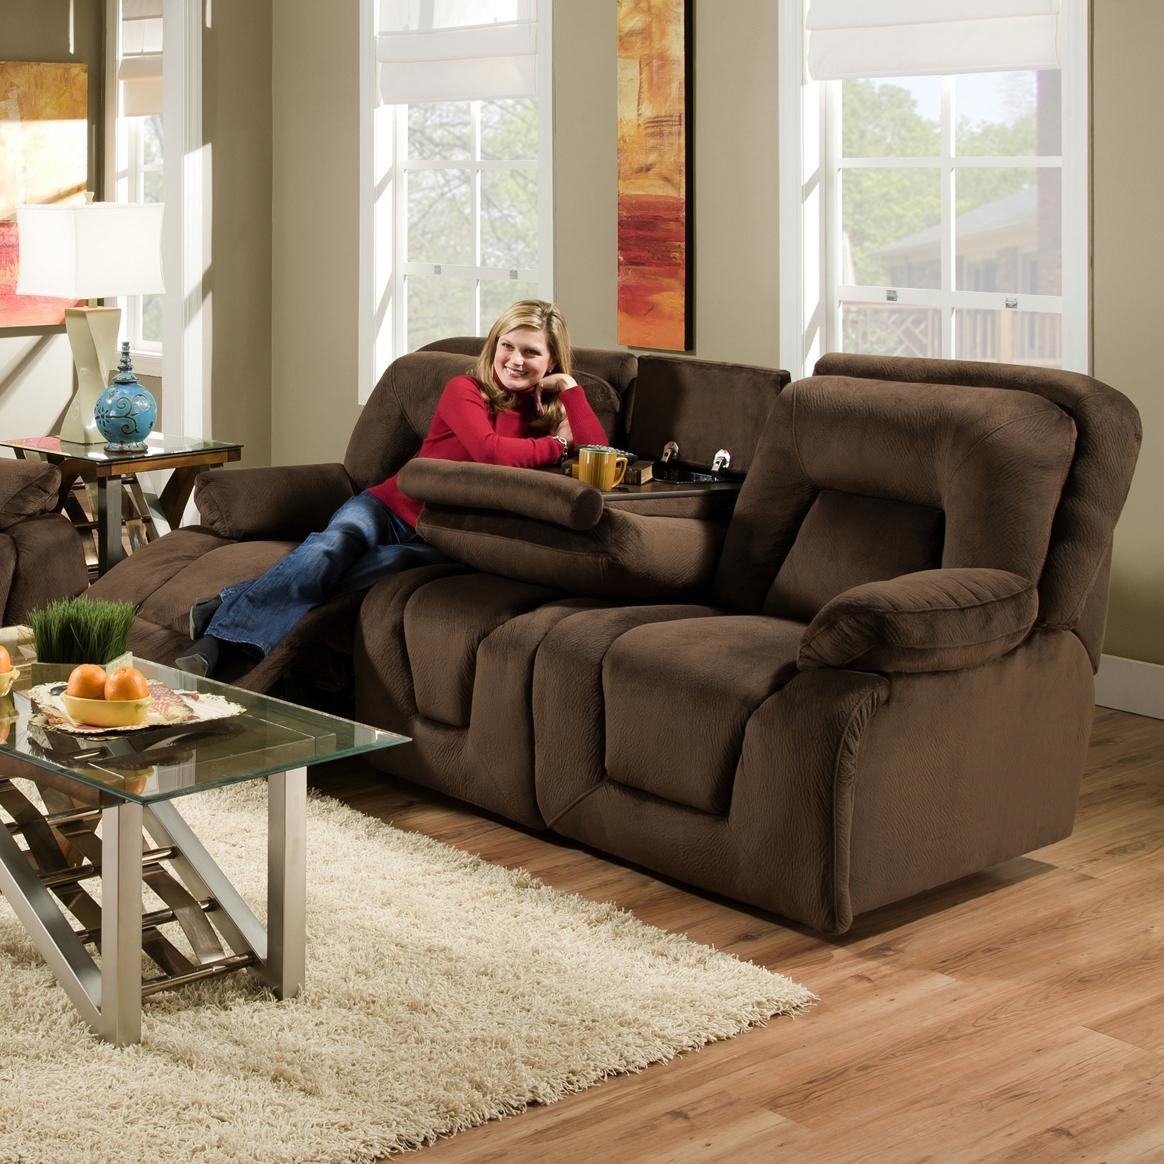 Franklin 473 Double Reclining Sofa With Drop Down Table For Casual Family  Room Style